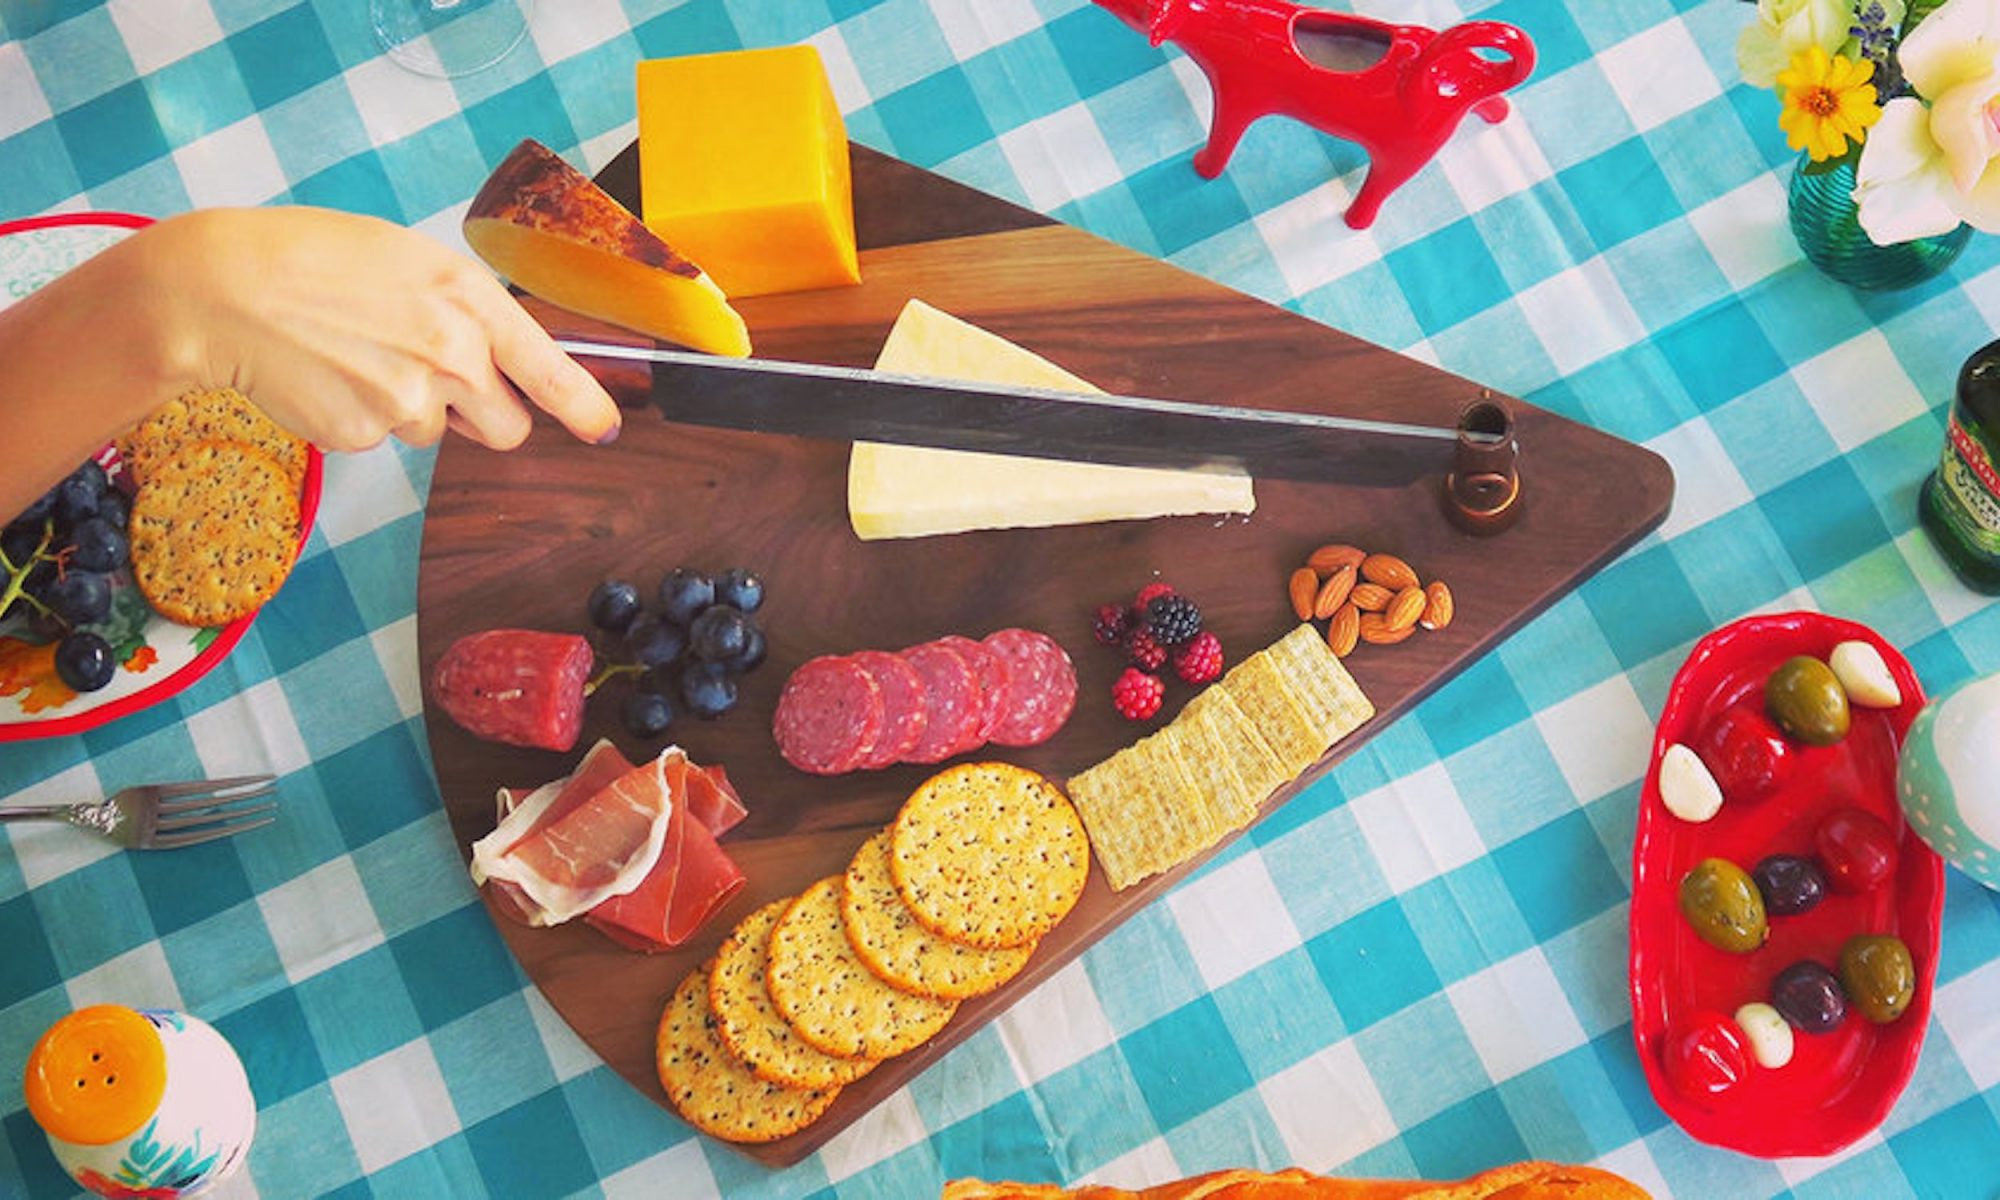 EC: This Two-in-One Cutting Board and Knife Will Make You a Better Chopper